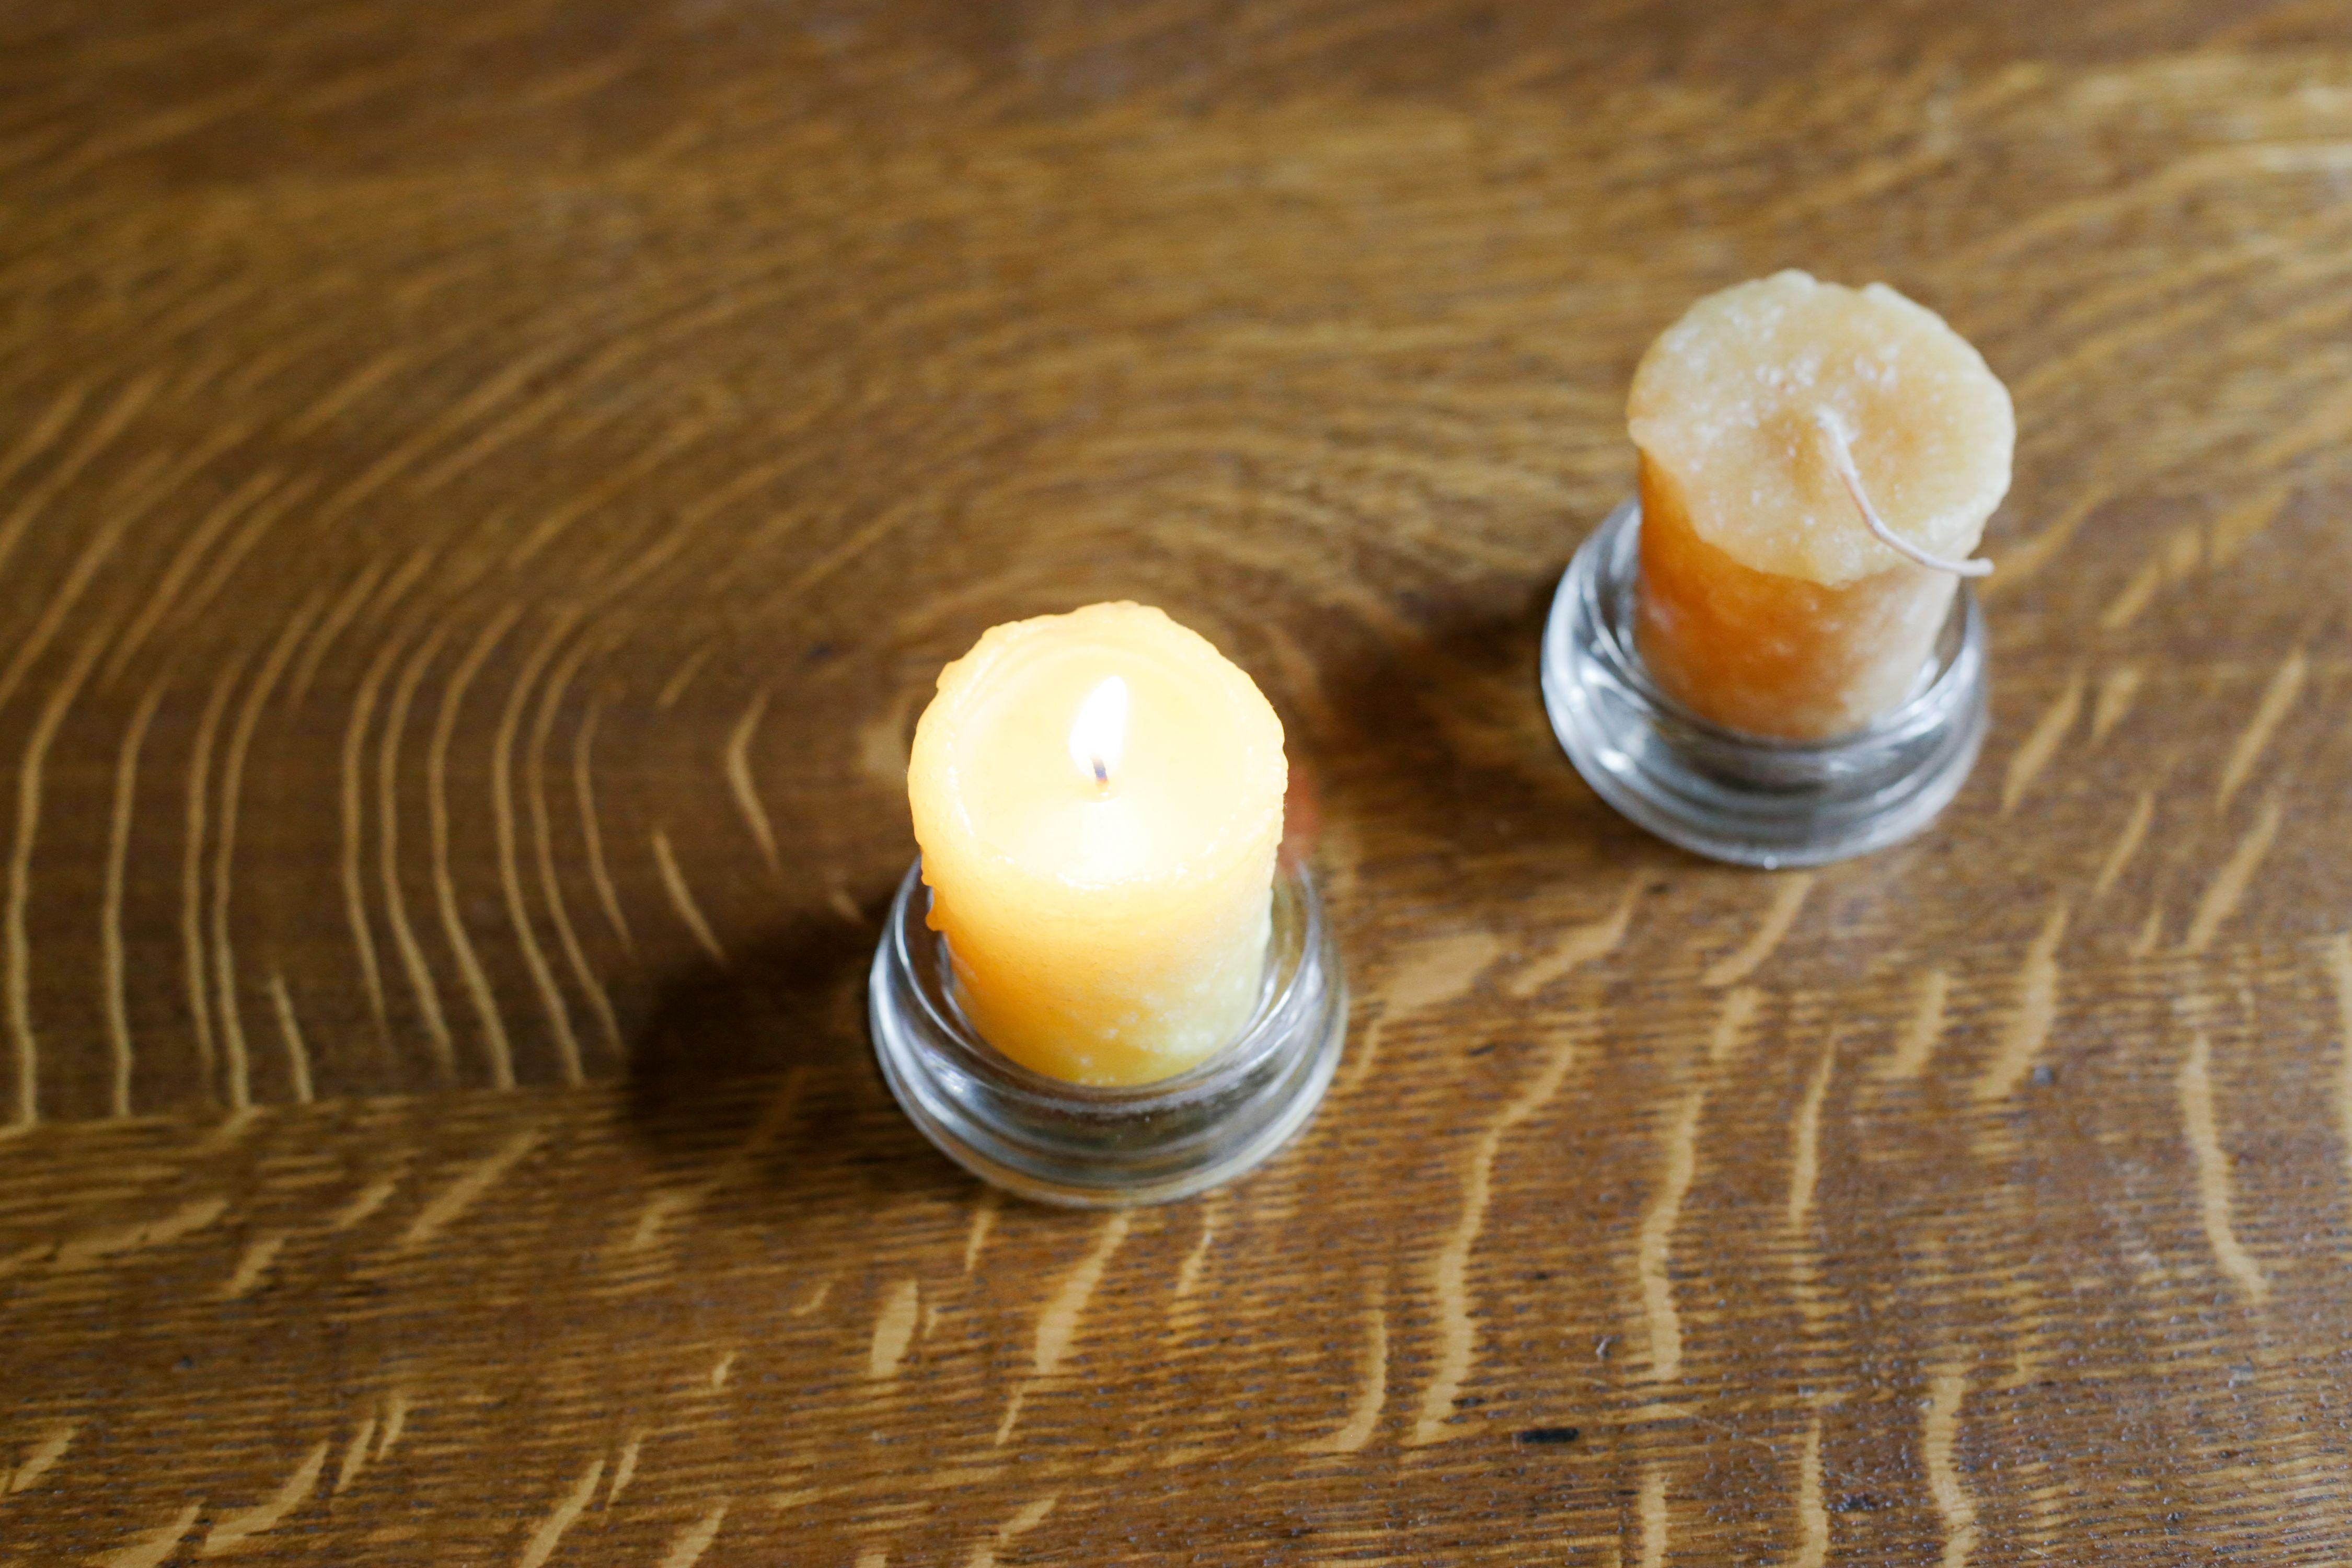 How to remove wax remove wax dining table candles wood